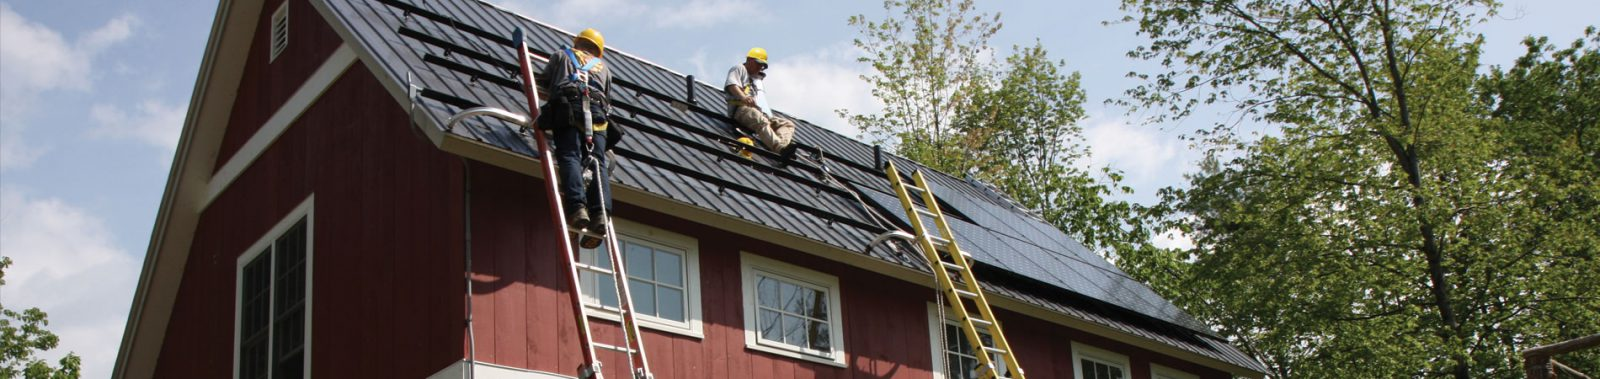 Residential solar being installed